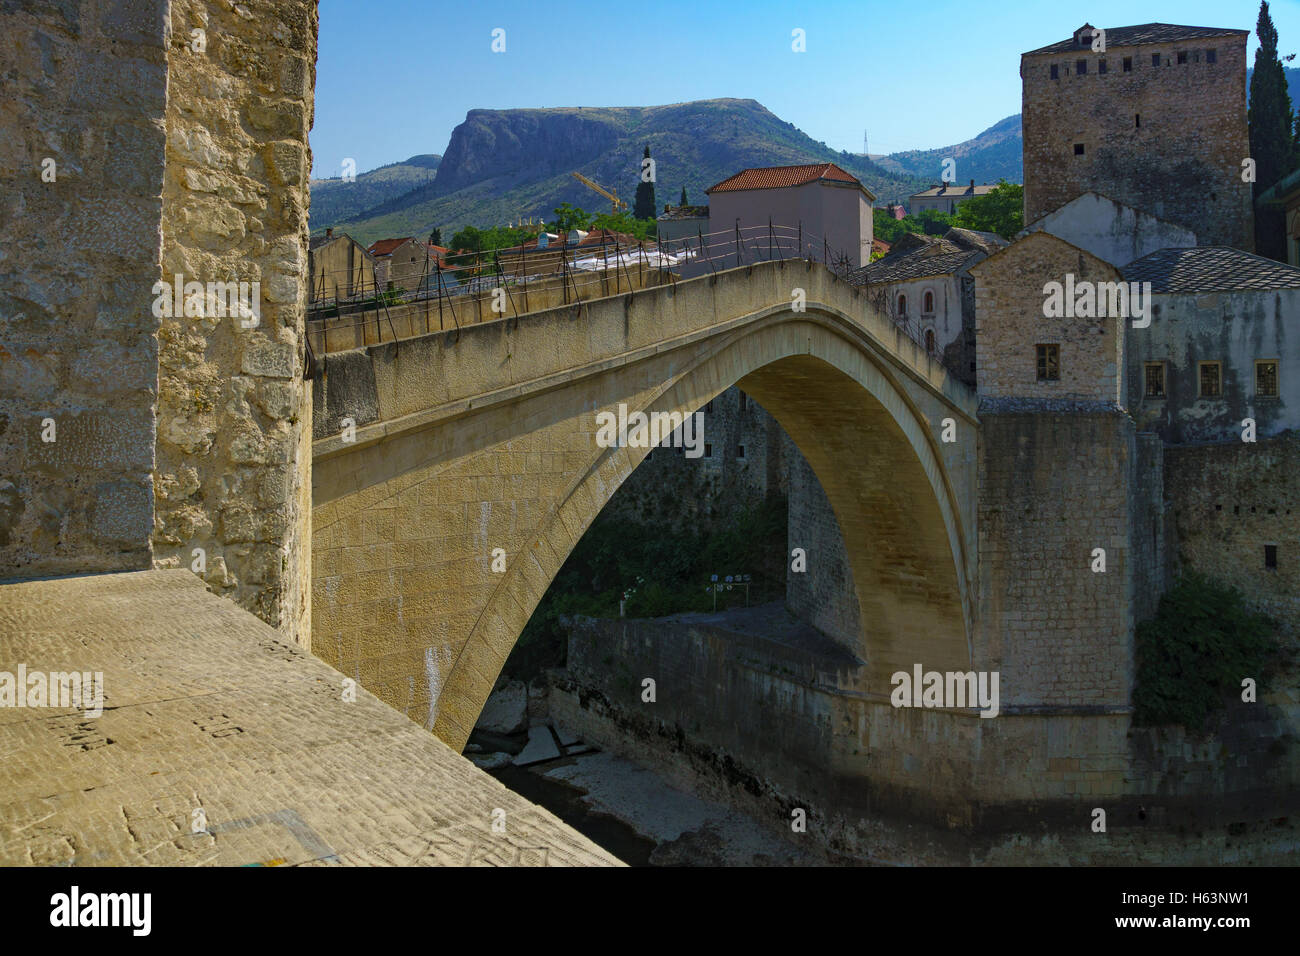 The old city and the restored Old Bridge (Stari Most), in Mostar, Bosnia and Herzegovina - Stock Image